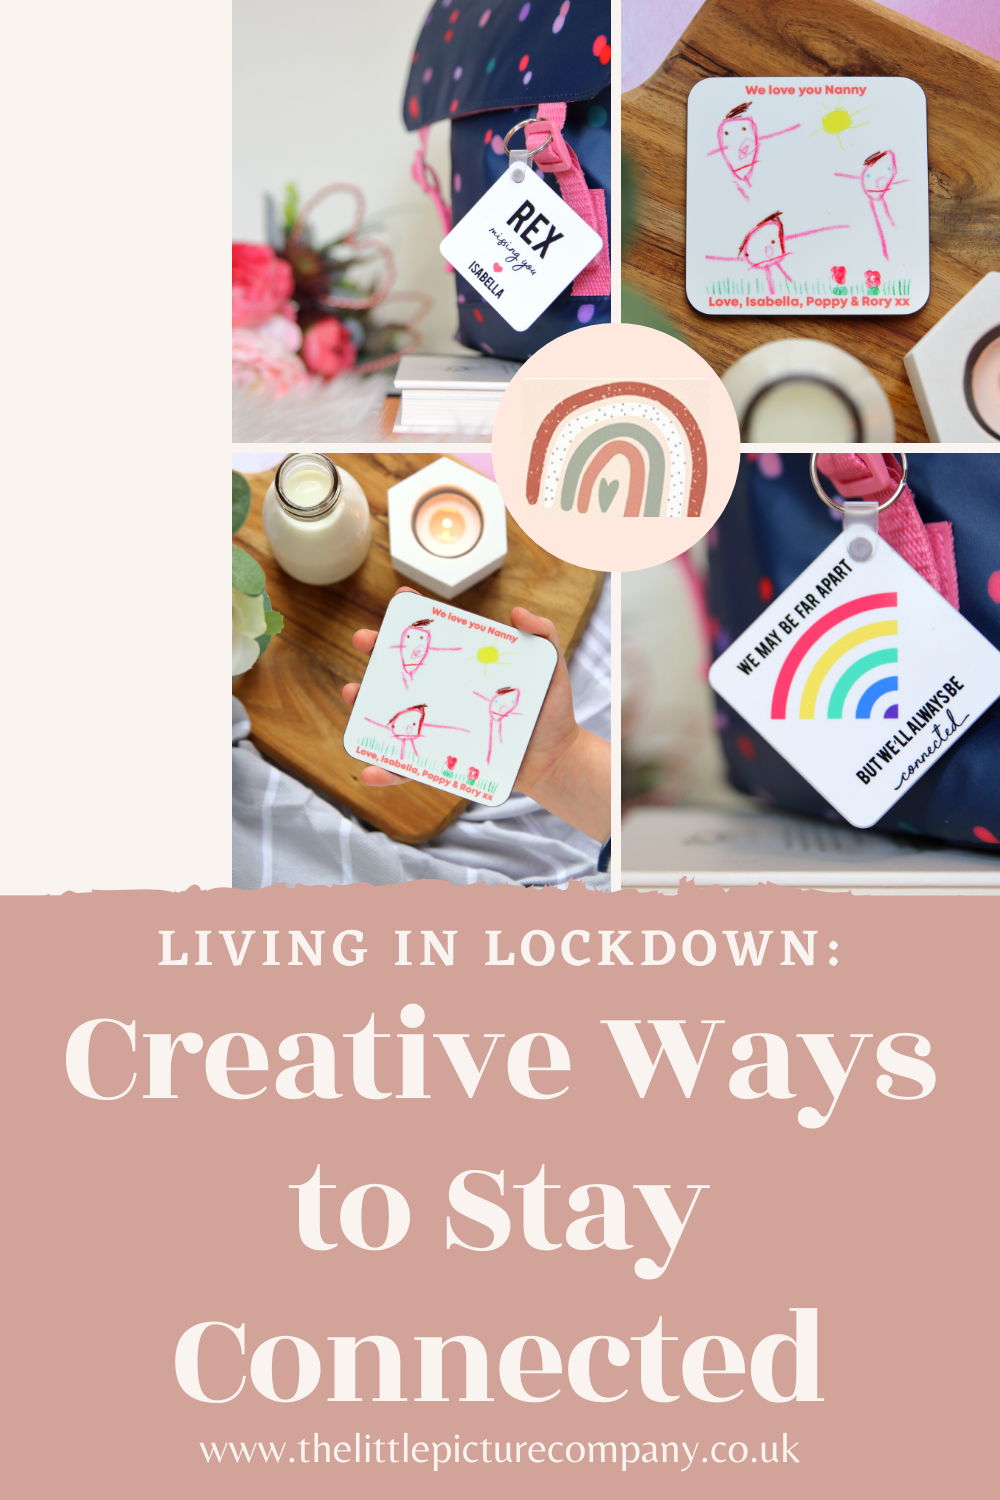 Living in Lockdown: Creative Ways to Staying Connected